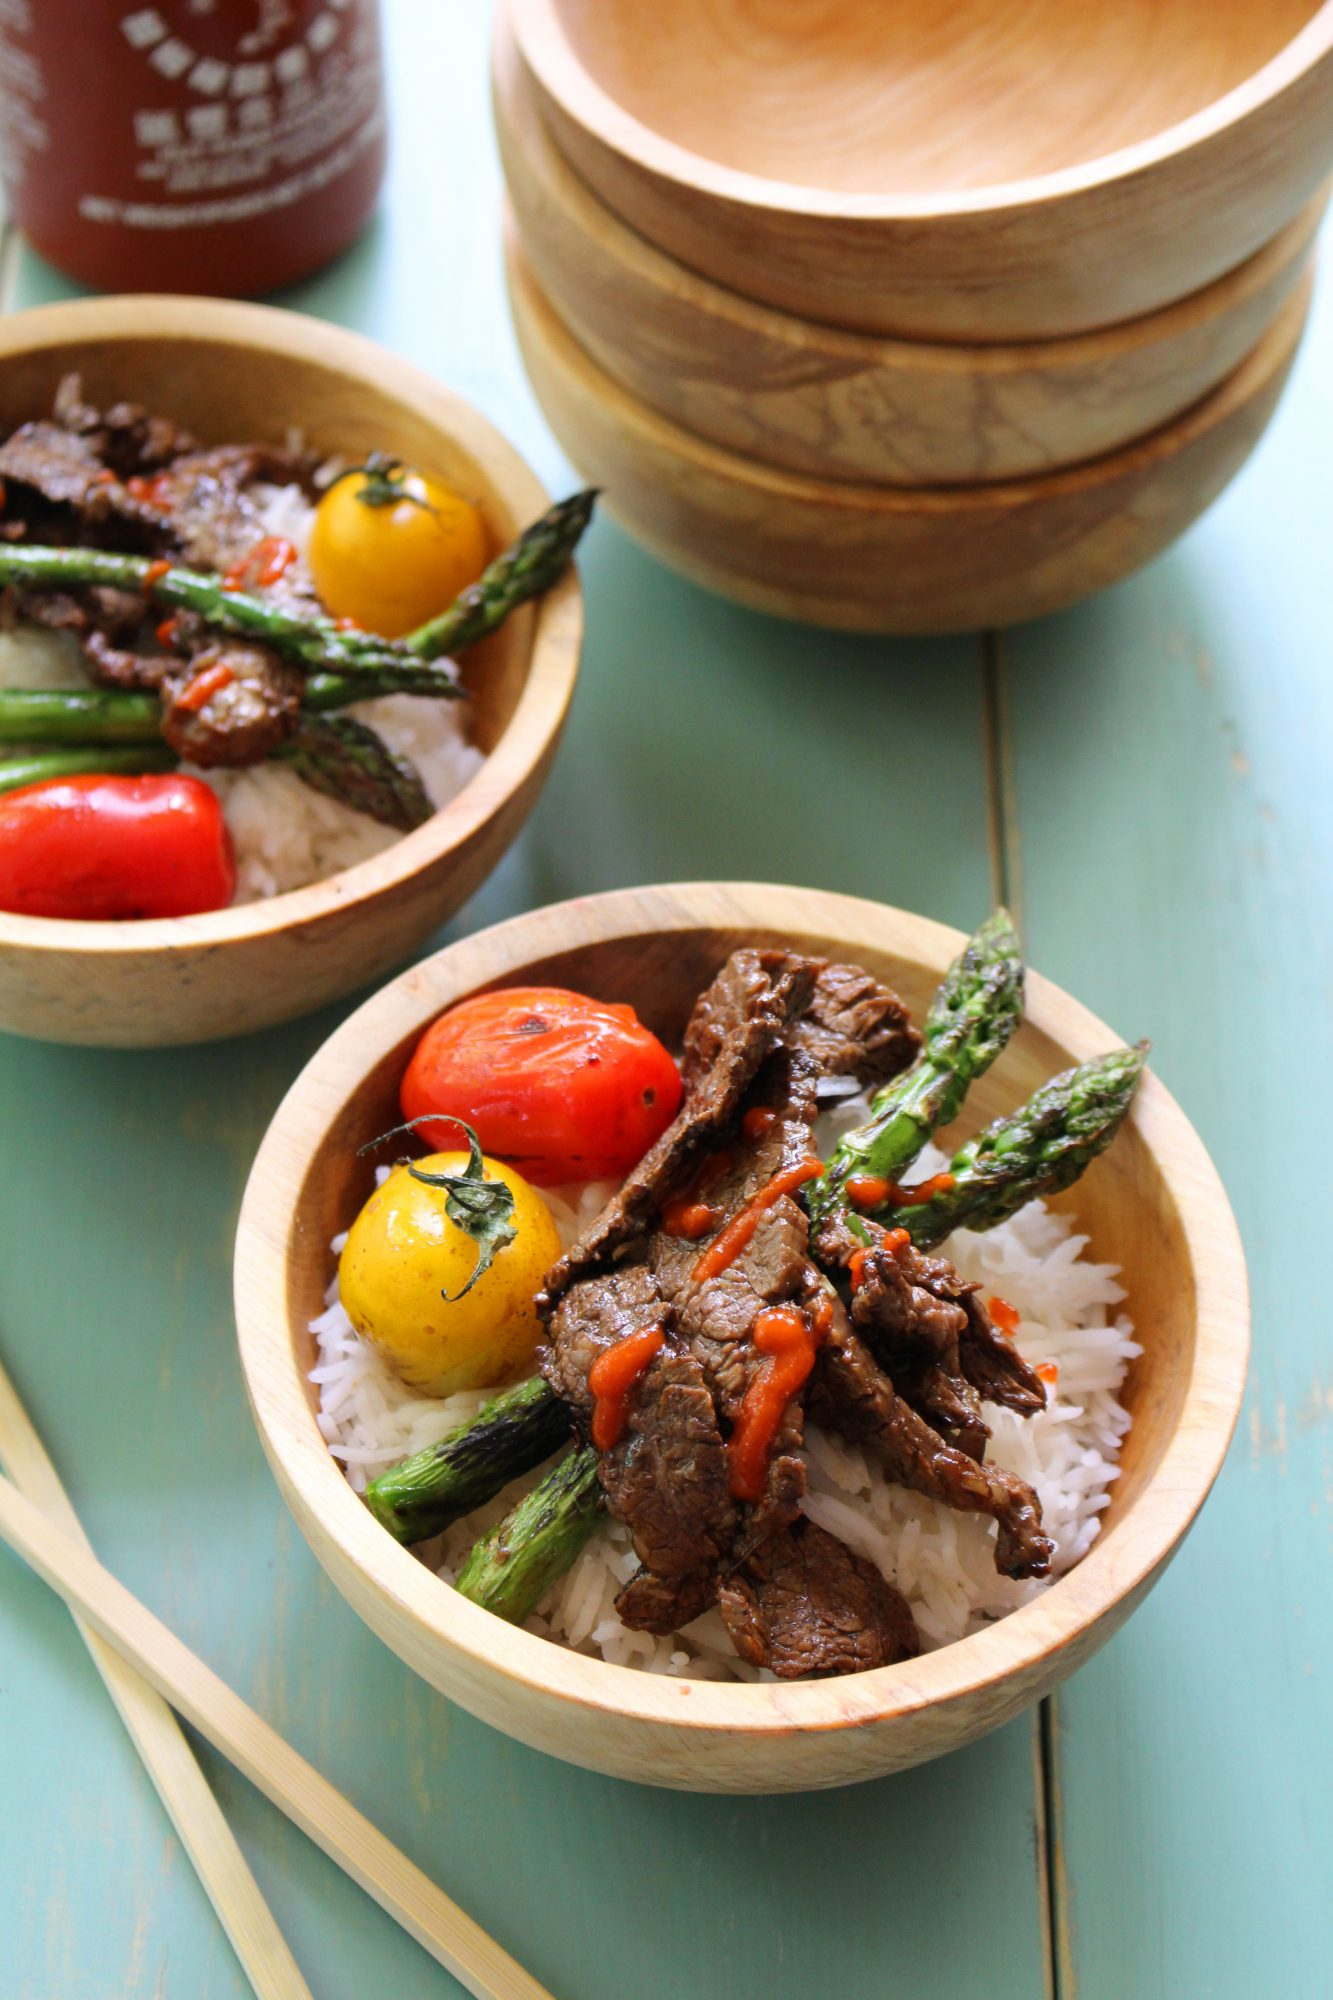 ... fried egg recipes korean rice bowl with steak asparagus and fried egg